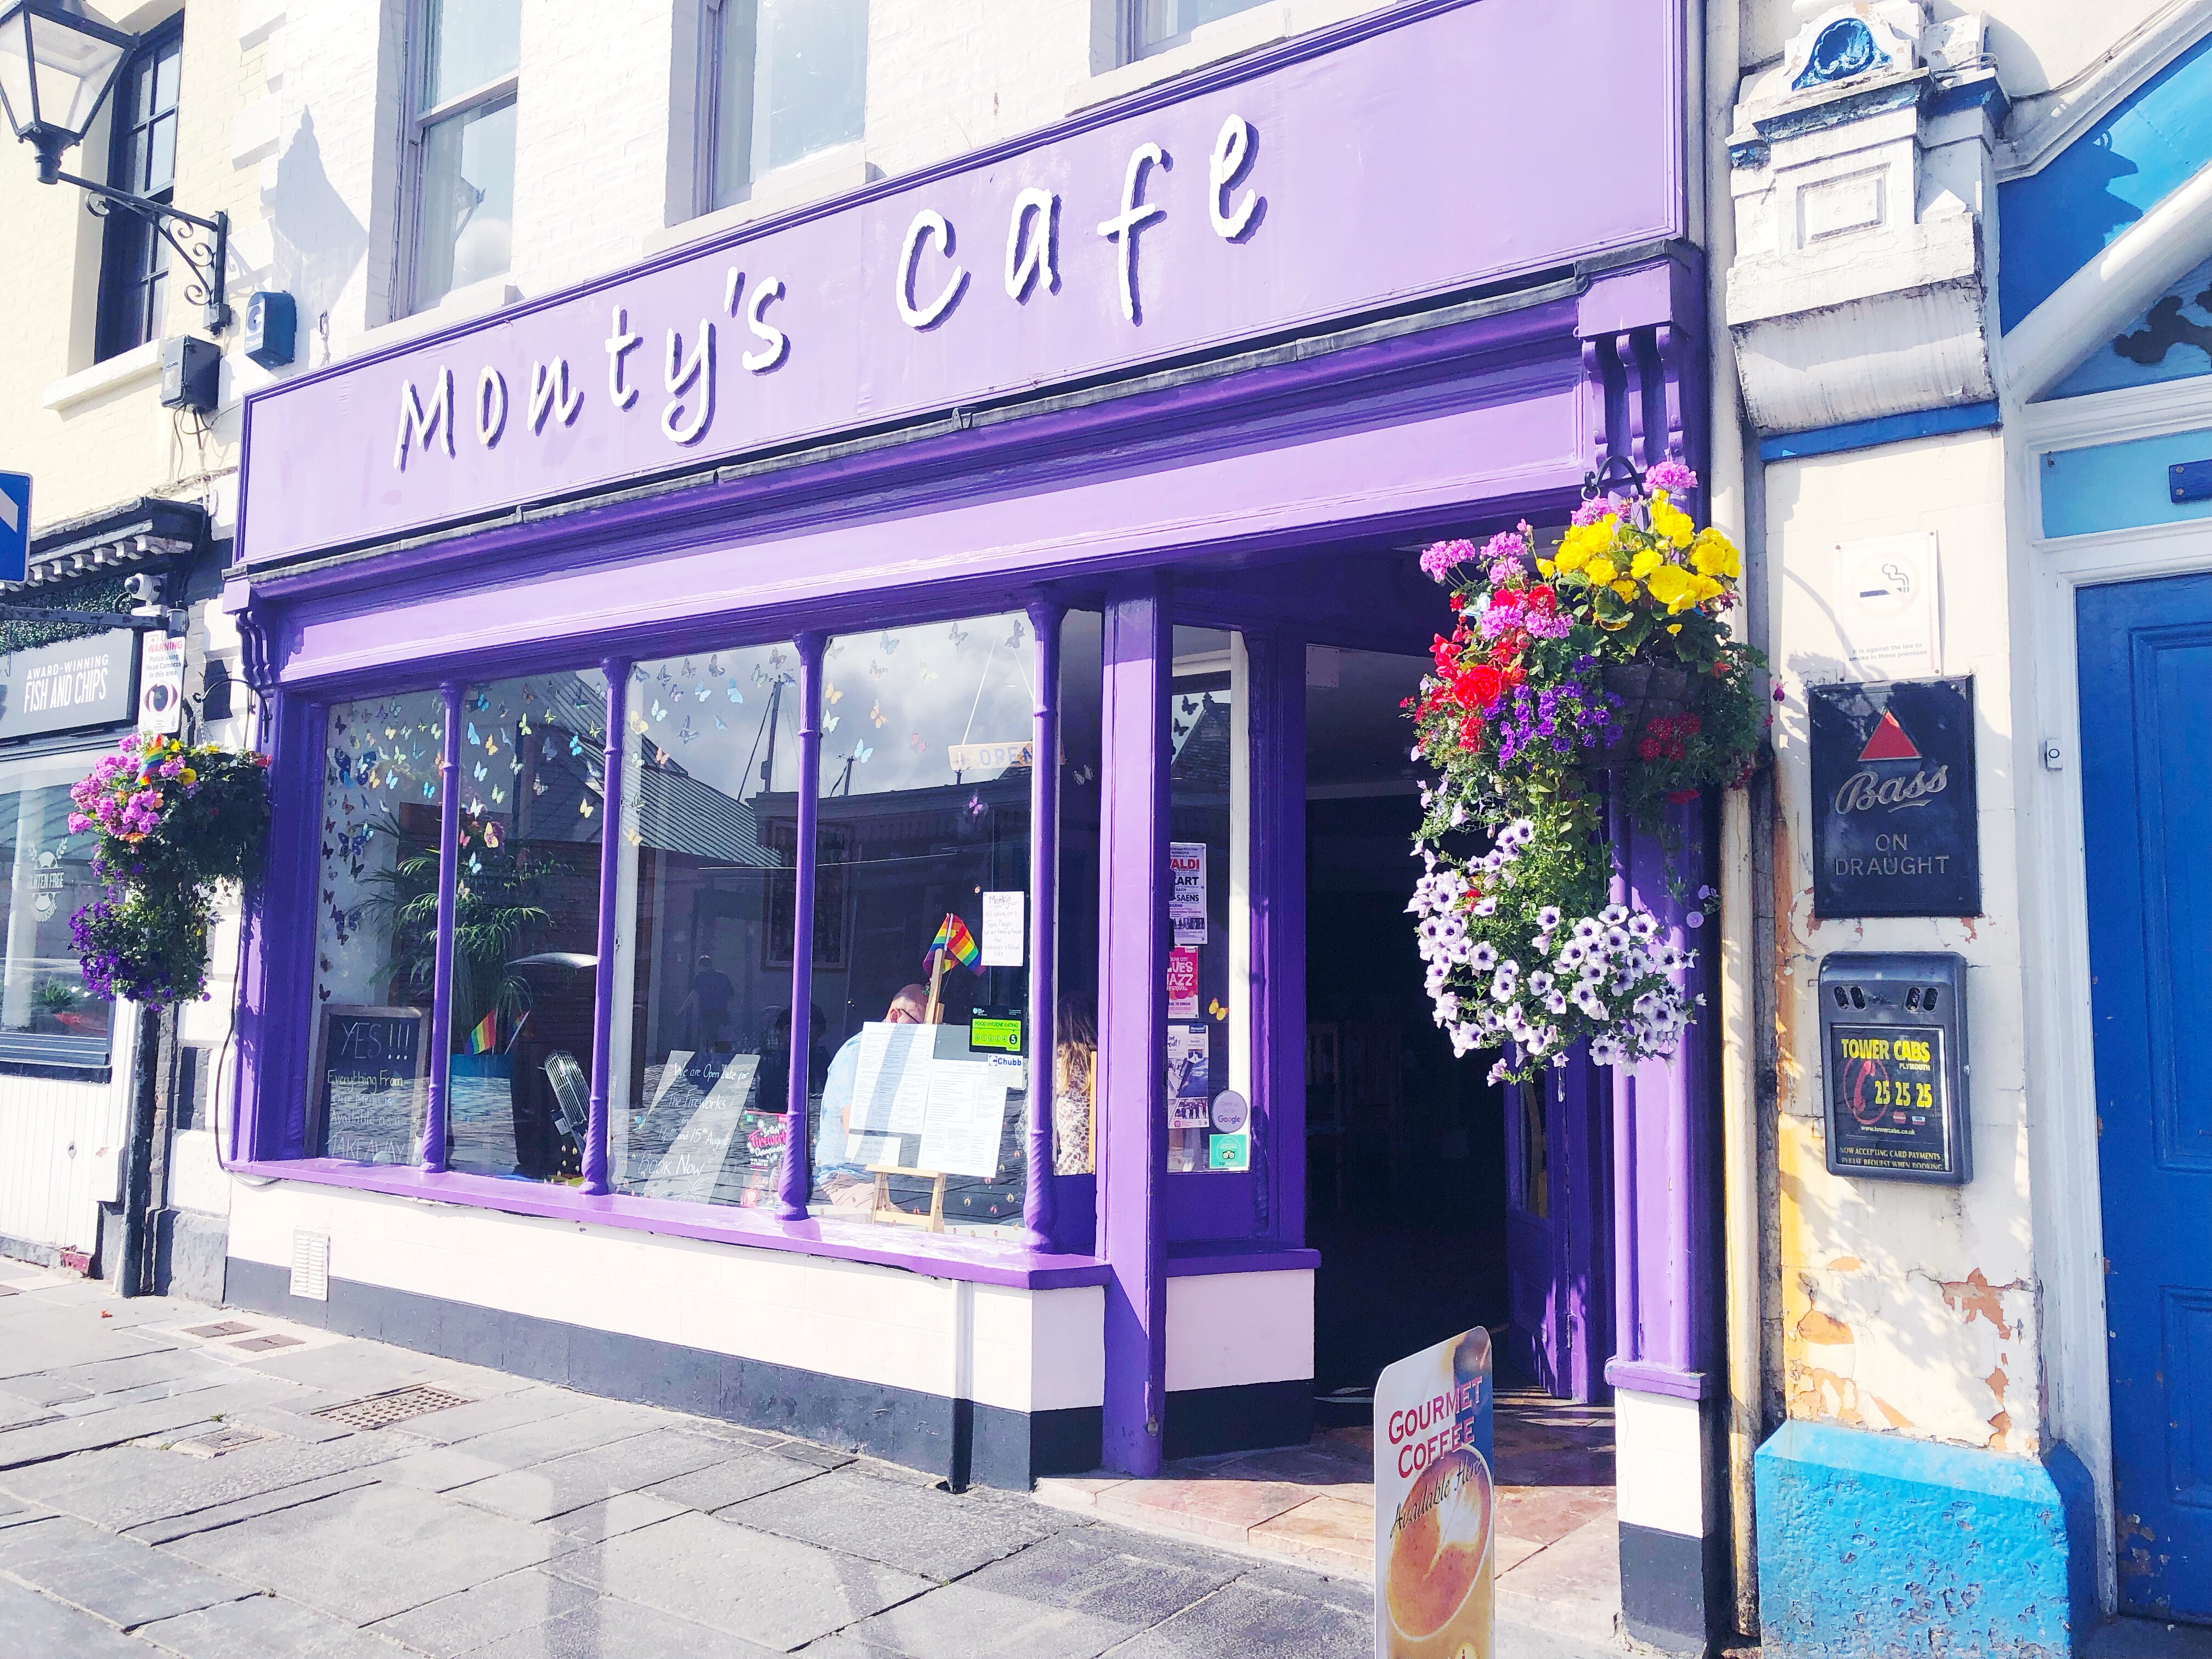 Gluten Free Breakfast at Monty's Cafe, Plymouth